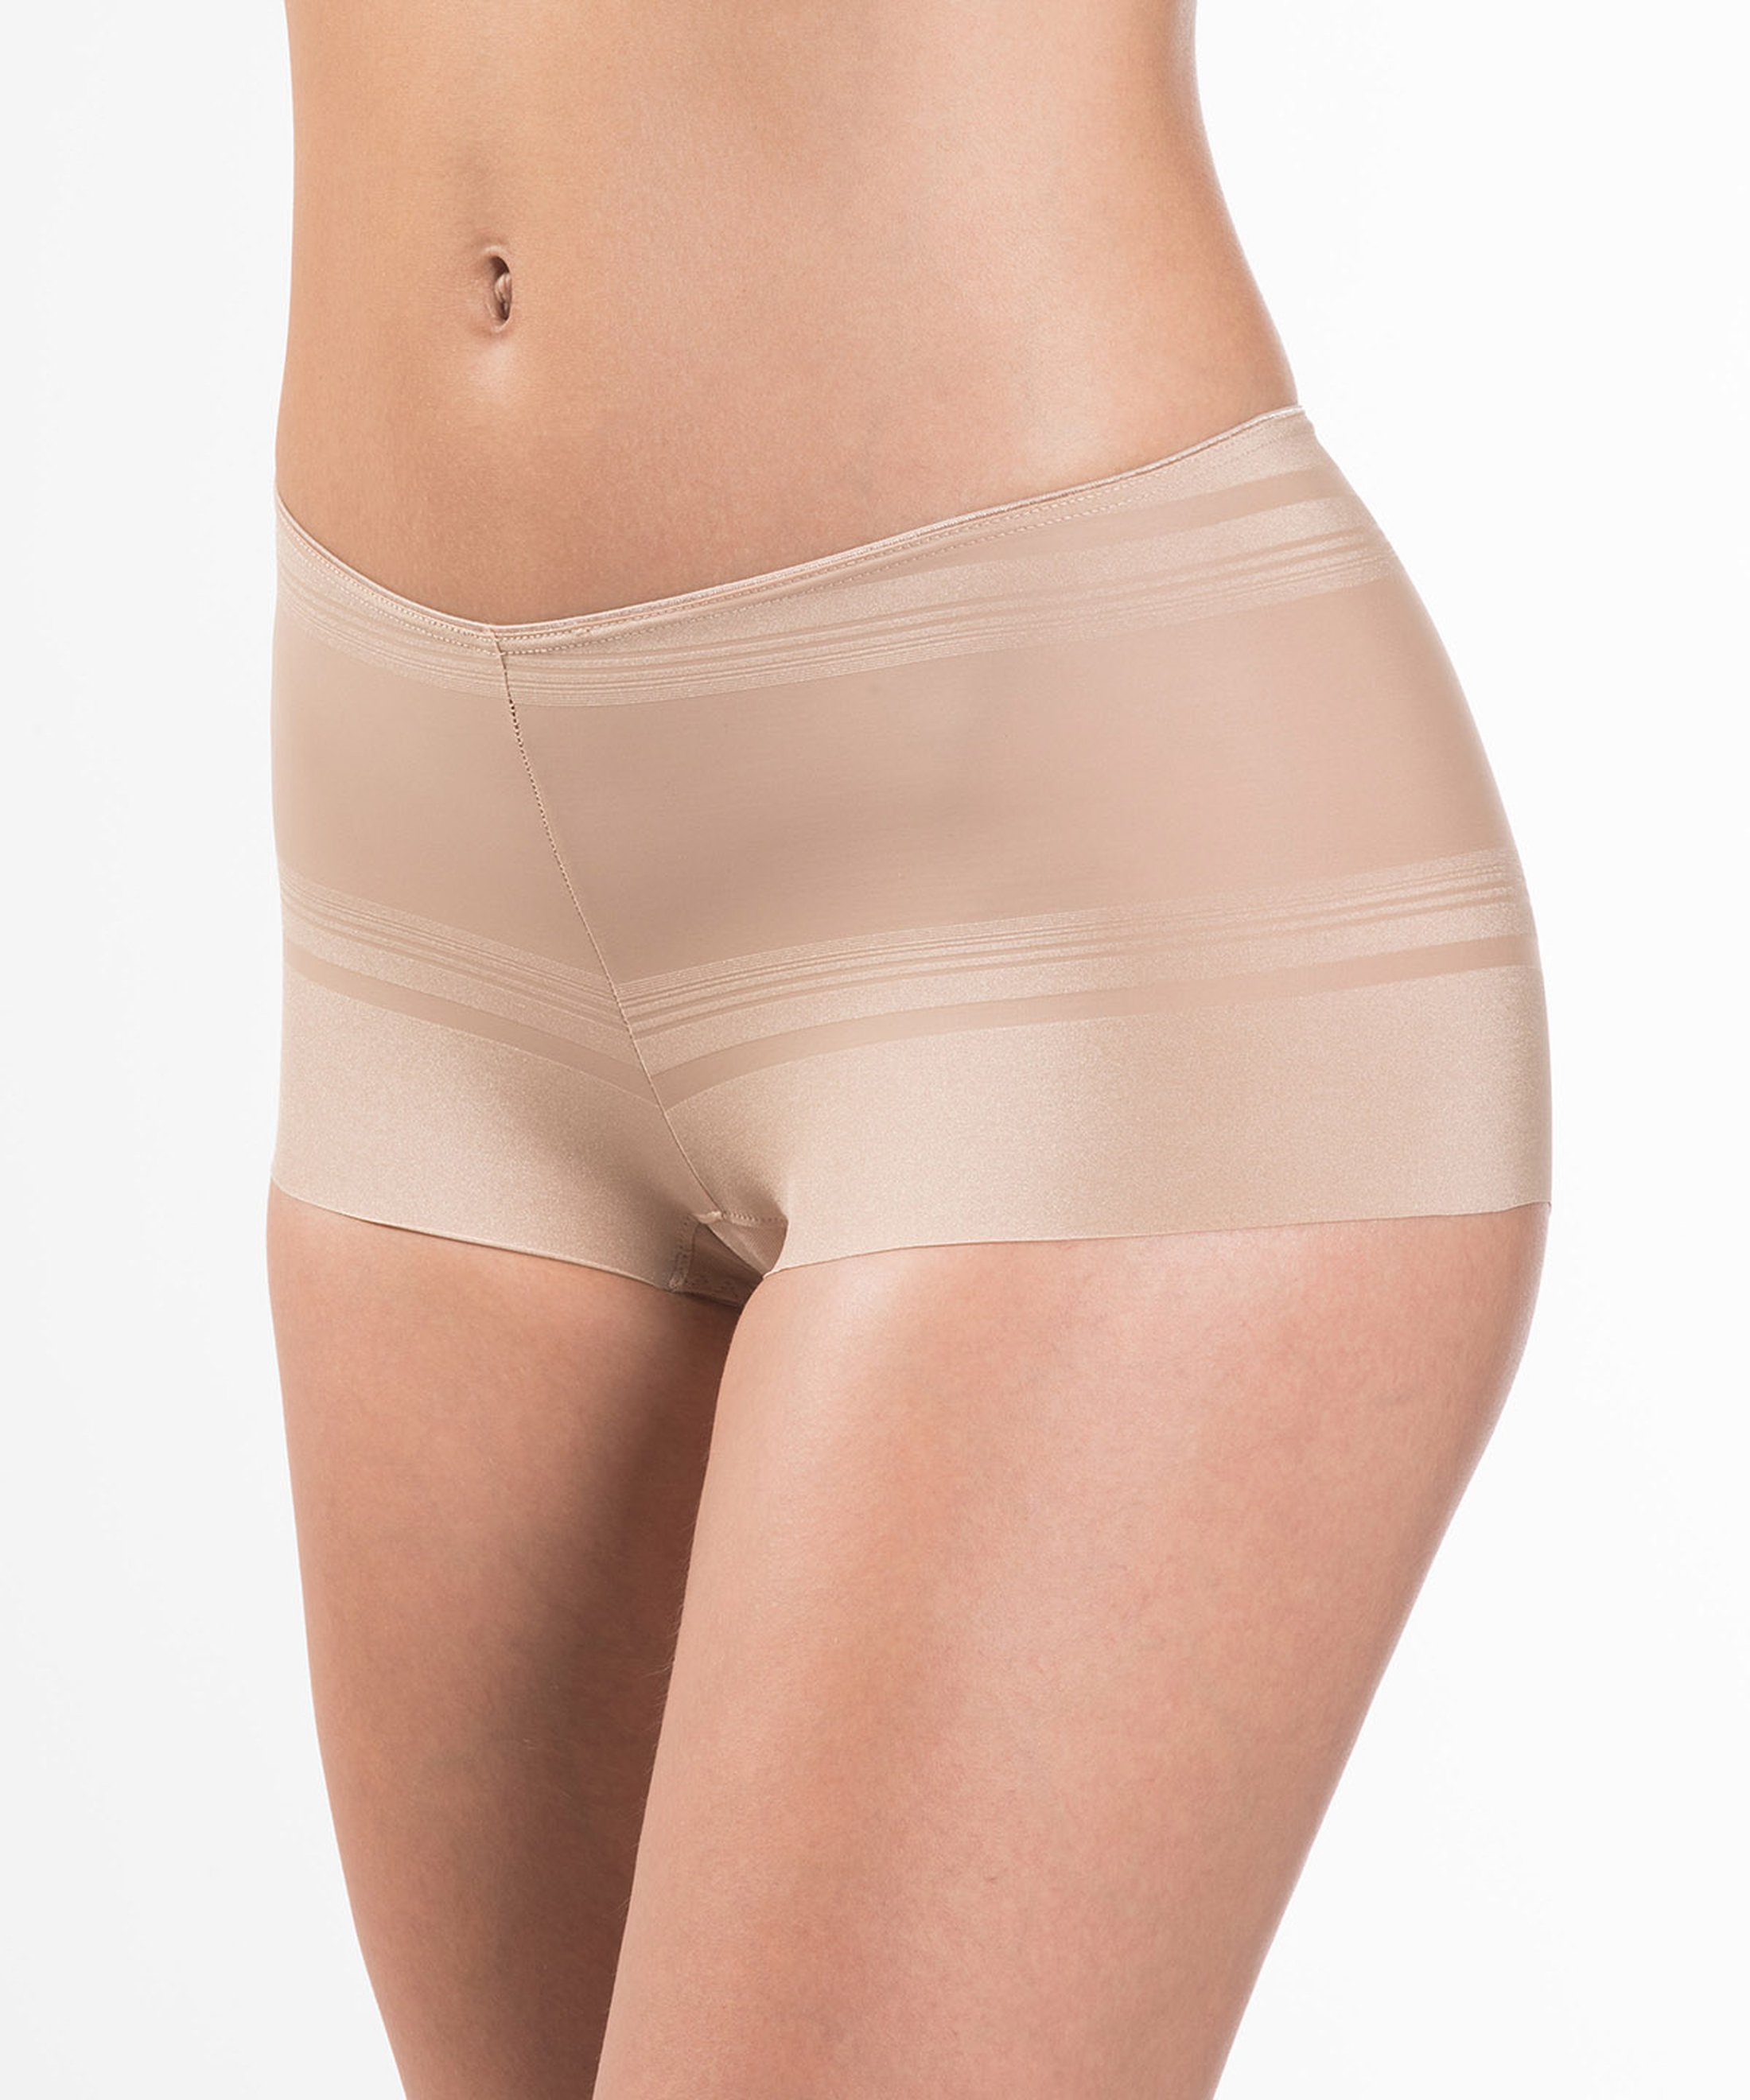 BEAUTY SCULPT Shorty St-Tropez Rafia | Aubade